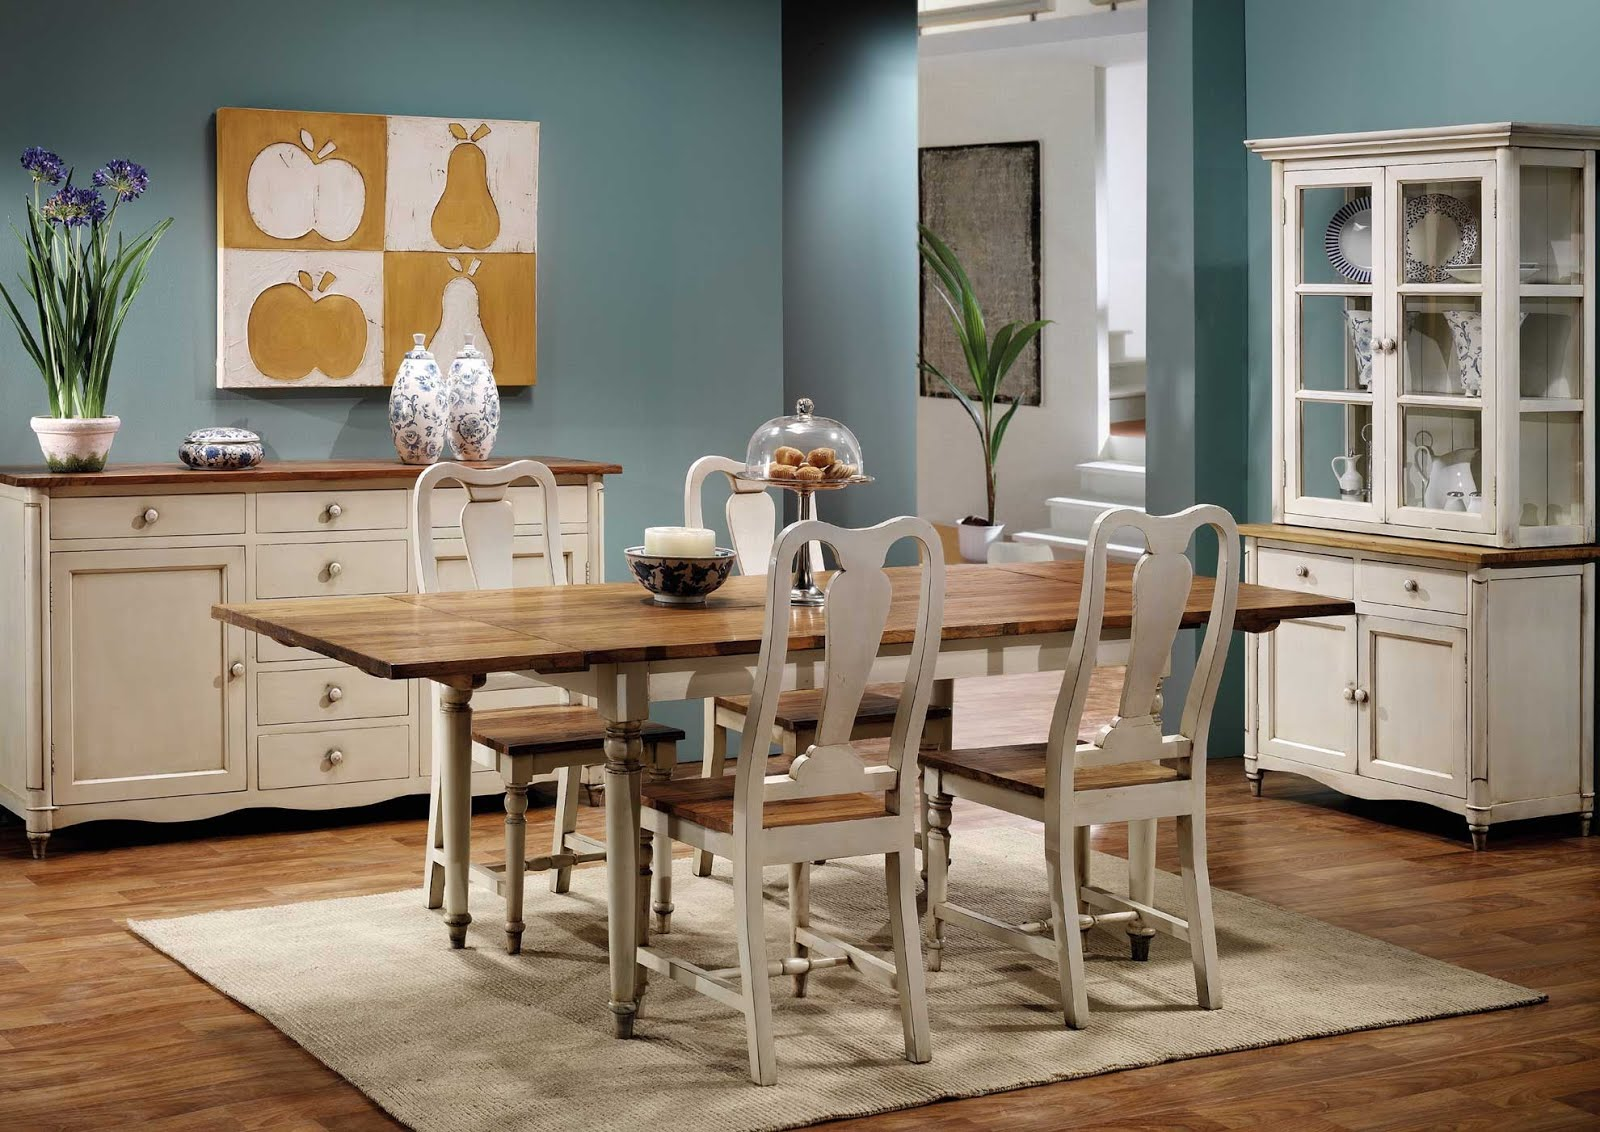 Beautiful Muebles Comedor Blanco Pictures - Casa & Diseño Ideas ...